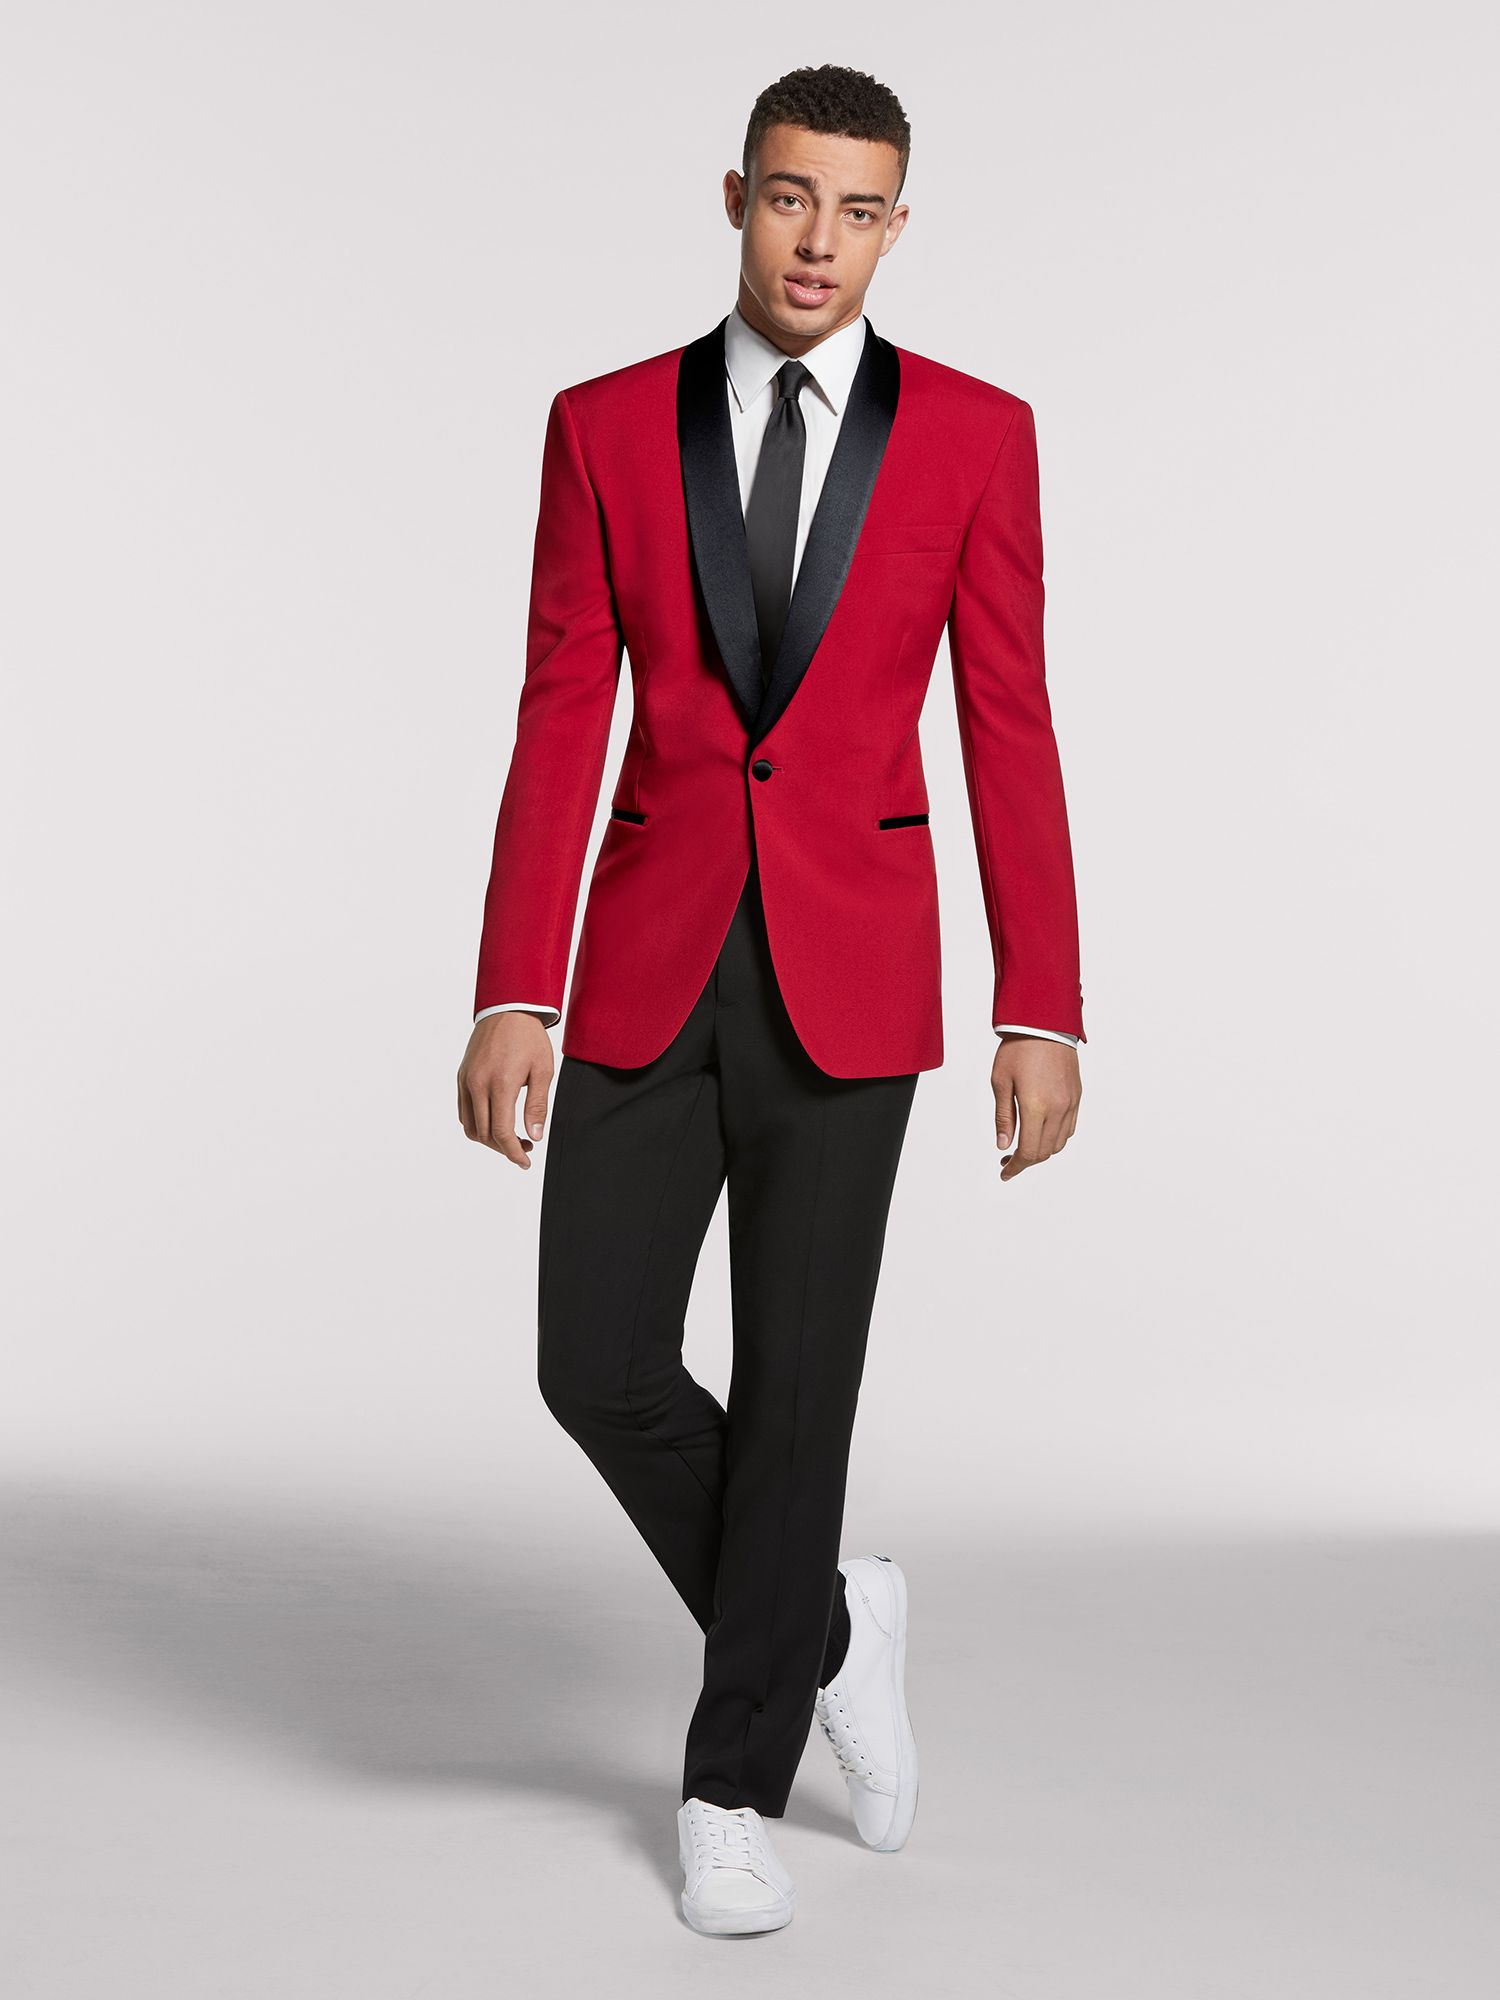 Mens Pre-Styled Looks, Suits - King of Hearts - Men's Wearhouse